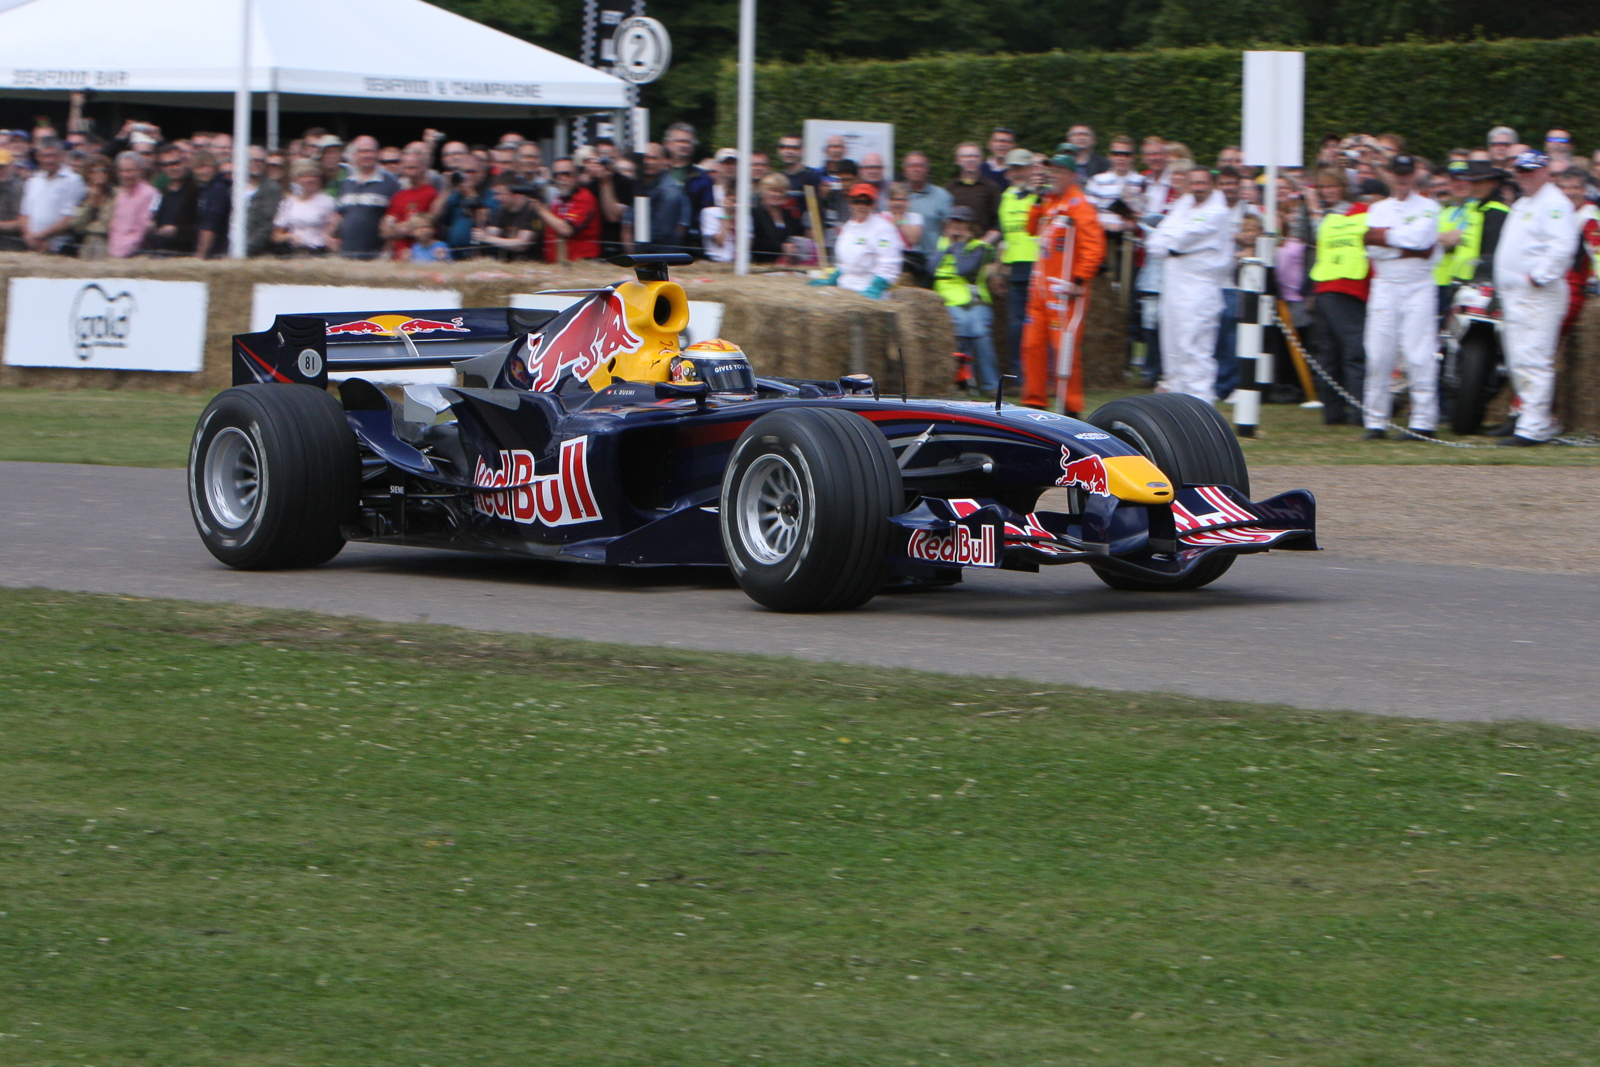 20080711 - Goodwood Festival of Speed -080711 -004